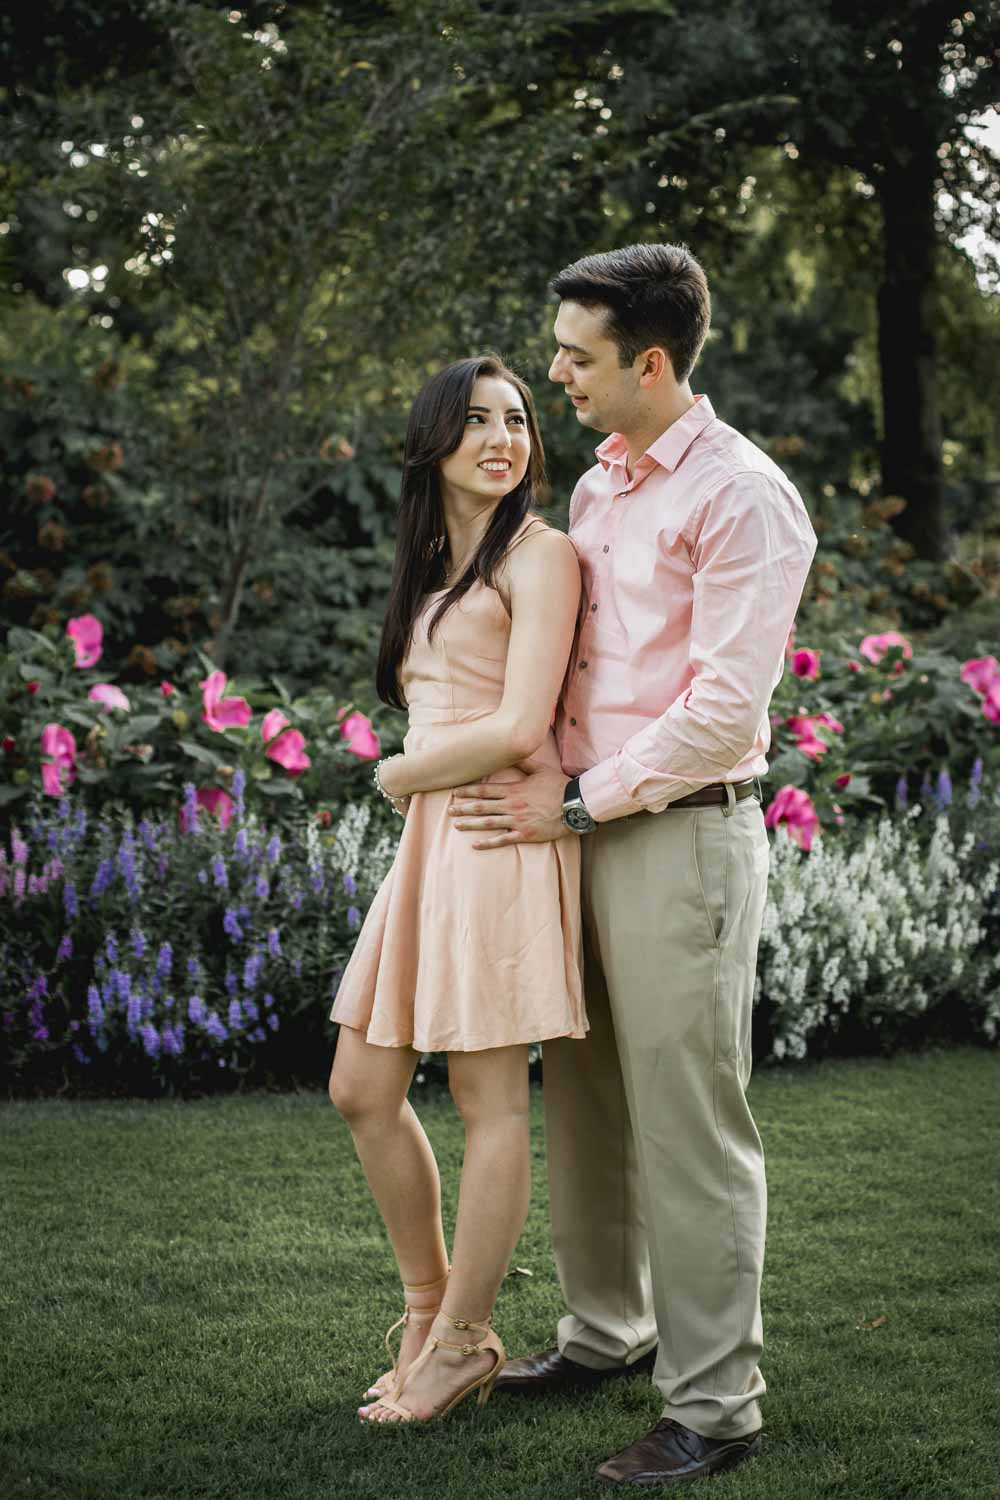 spring-engagement-session-at-fred-fletcher-park.jpg